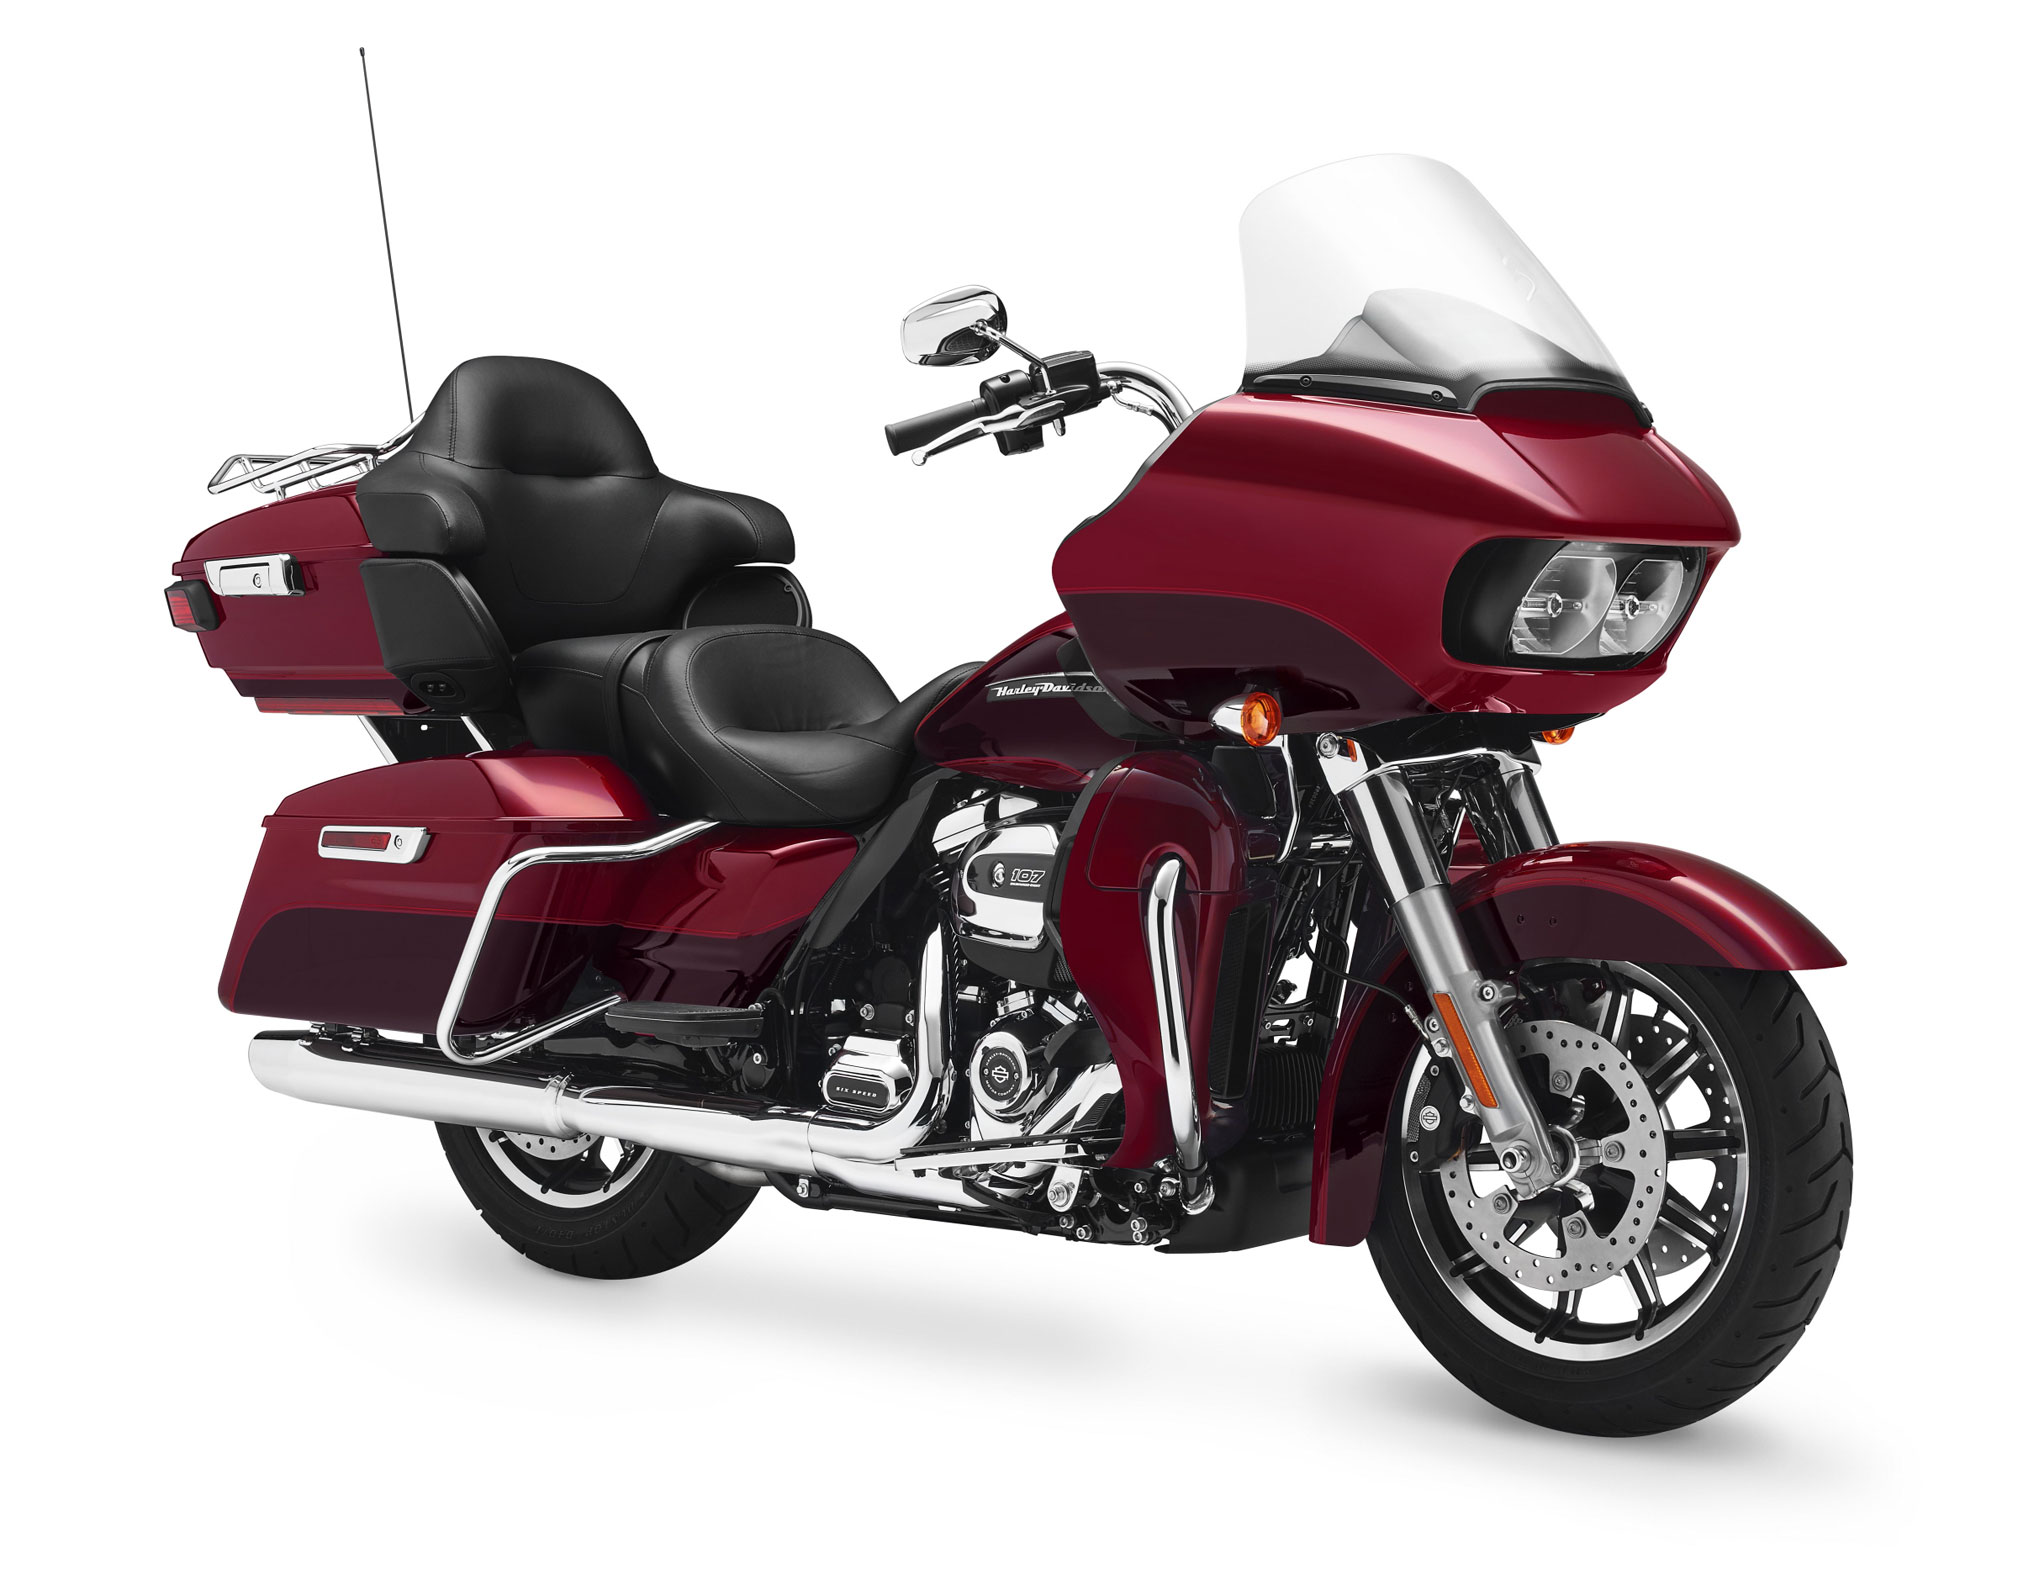 2018 harley davidson road glide ultra review totalmotorcycle. Black Bedroom Furniture Sets. Home Design Ideas